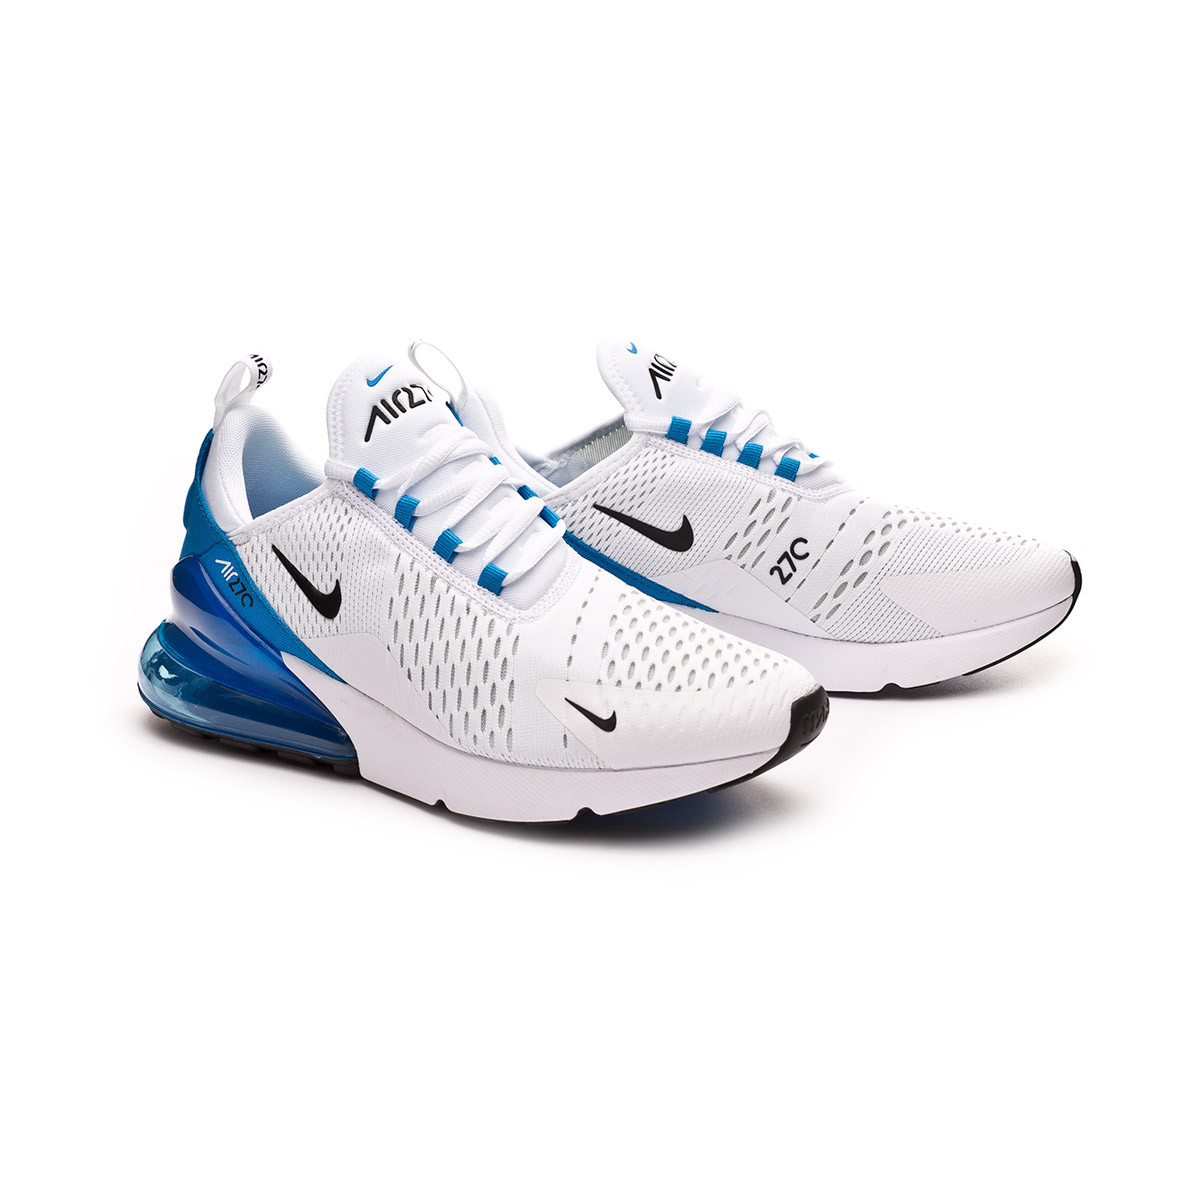 no sale tax ecd92 7aa4d Zapatilla Air Max 270 White-Black-Photo blue-Pure platinum